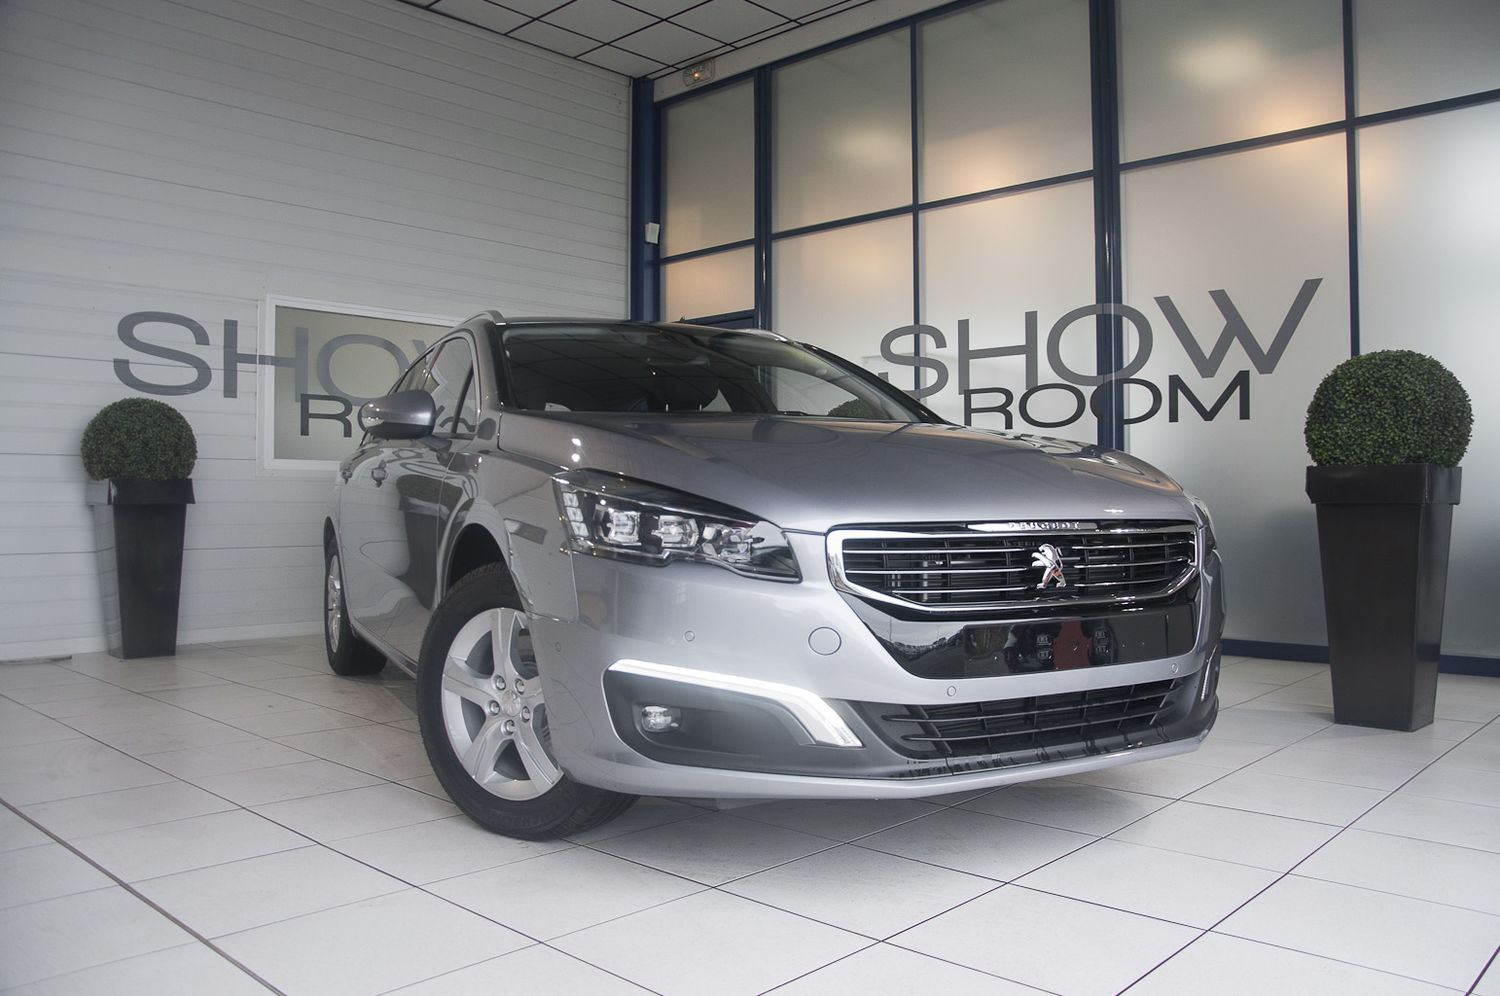 voiture peugeot 508 1 6 thp 16v 165 ch active occasion essence 2016 20 km 24900. Black Bedroom Furniture Sets. Home Design Ideas